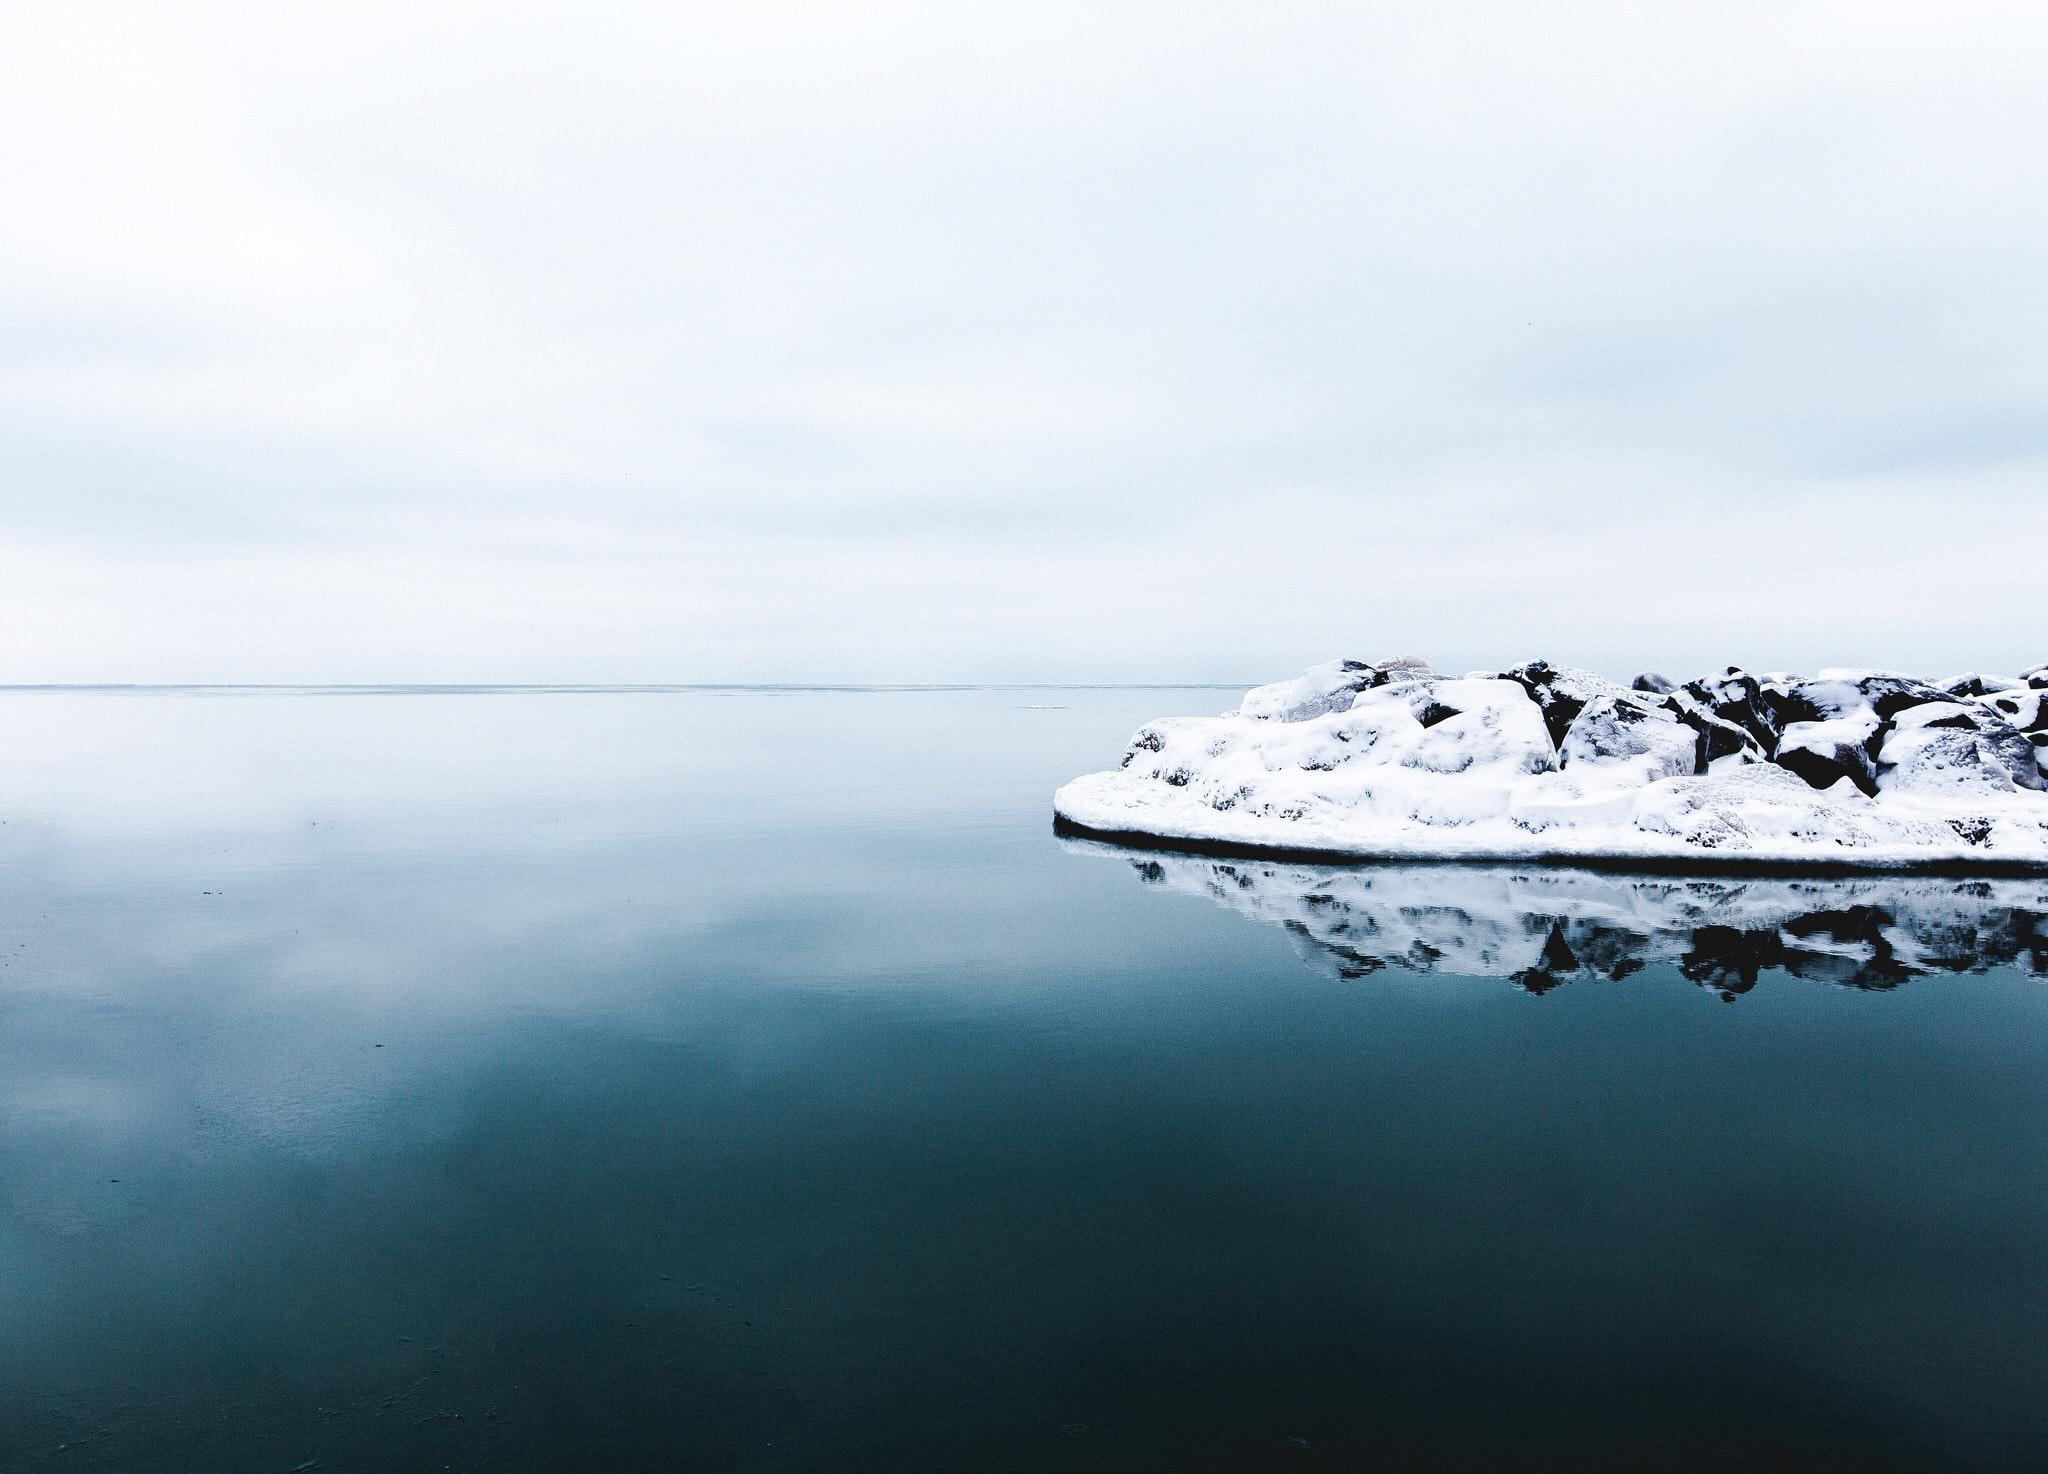 black rock formation covered with snow beside calm body of water